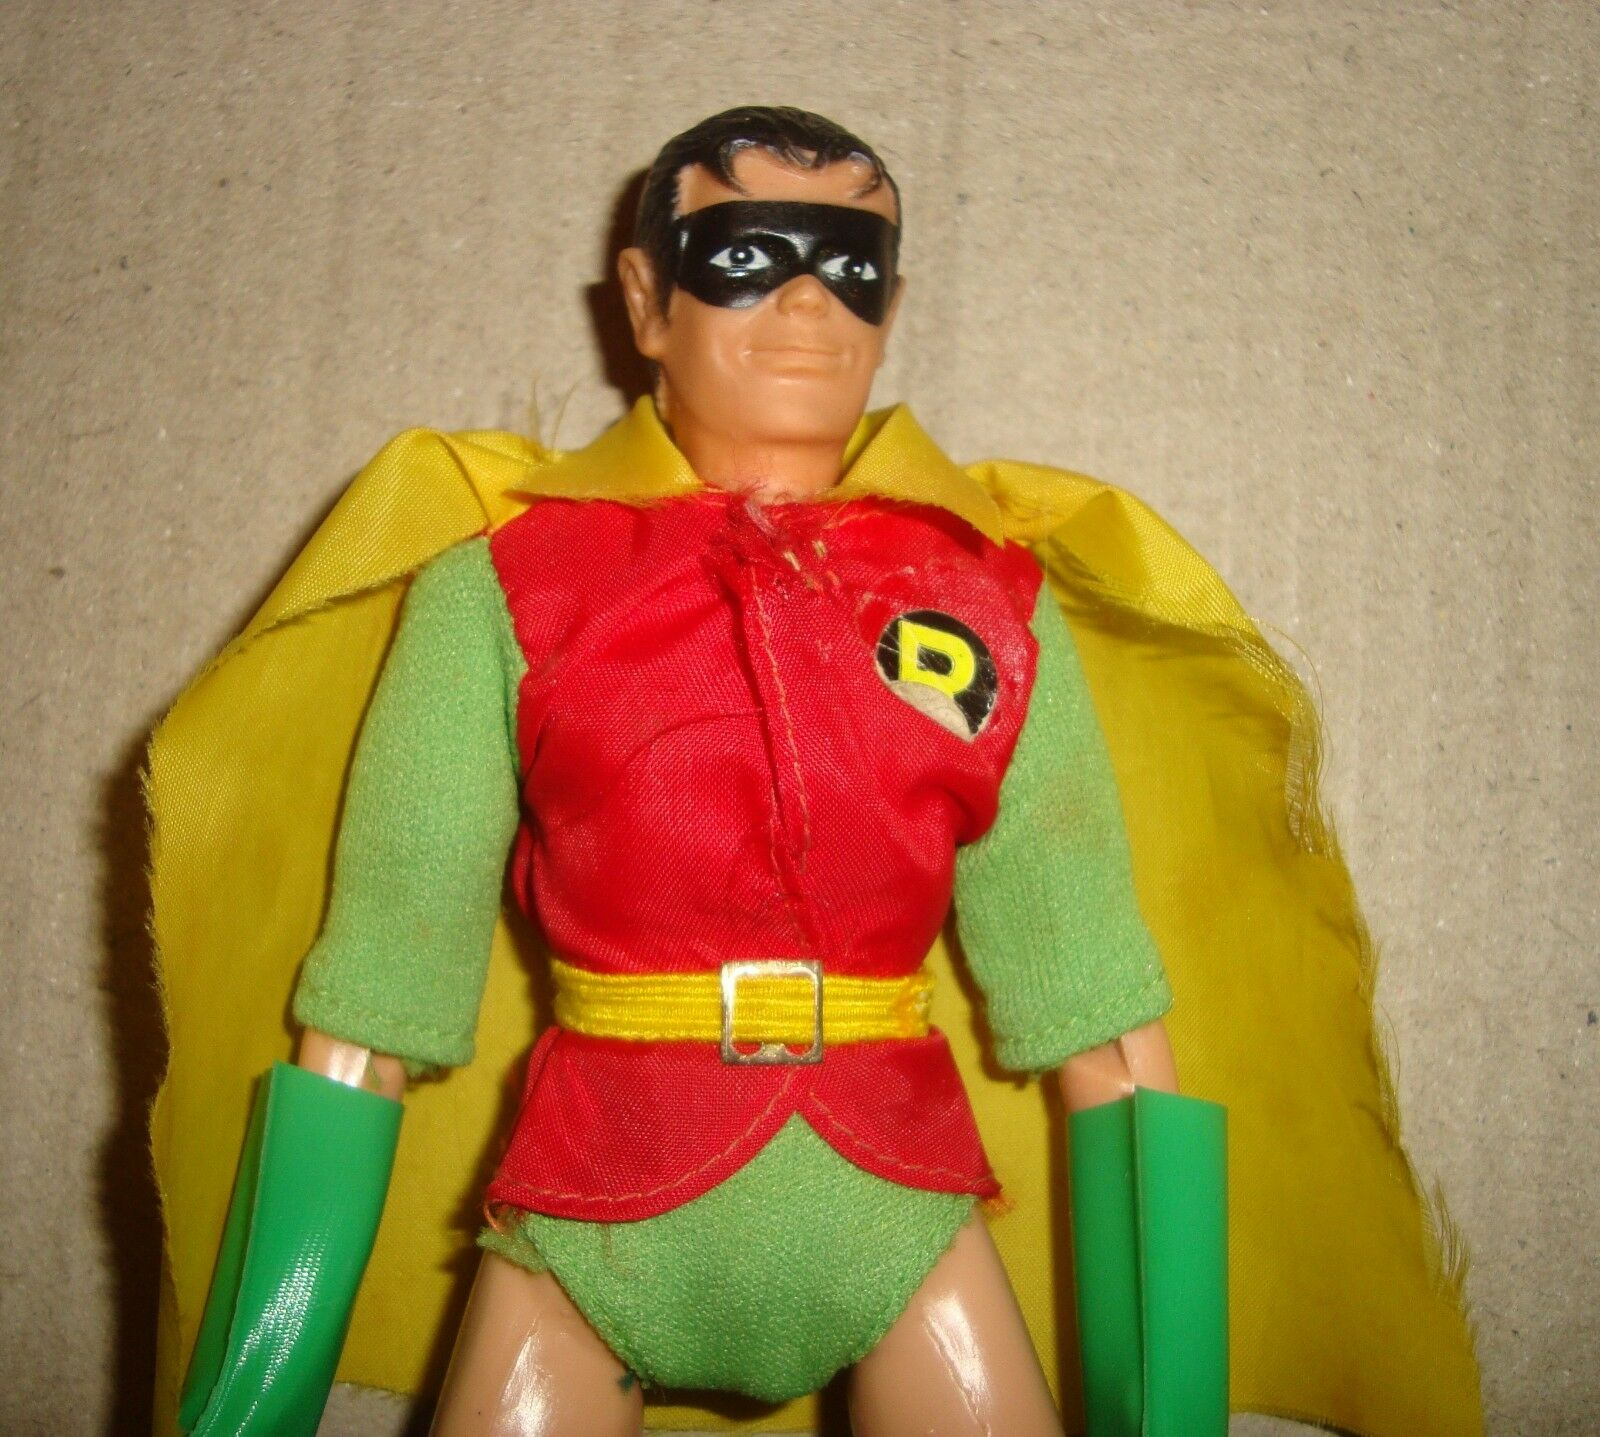 MEGO WORLD'S GREATEST SUPER-HEROES SUPER-HEROES SUPER-HEROES ROBIN BOX VERSION MEGO CORP. 1972 (BATMAN) e8240d